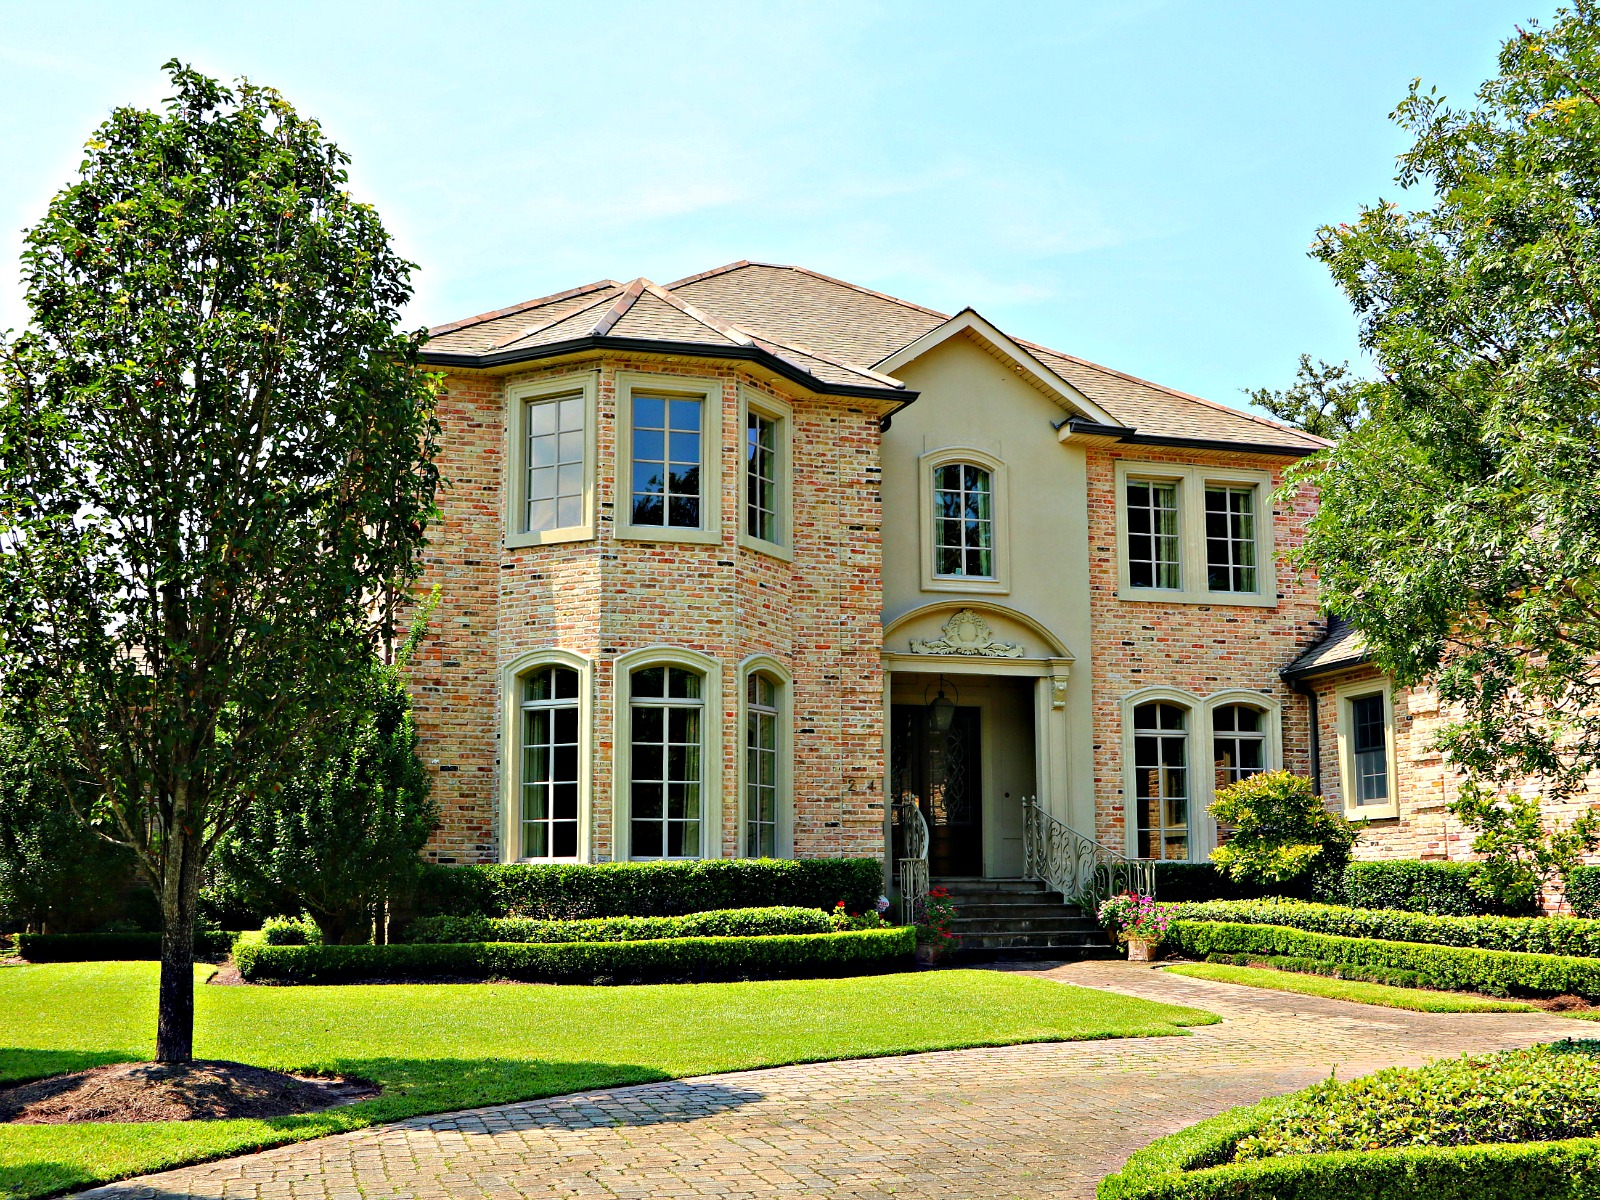 Newer Homes are all over Old Metairie